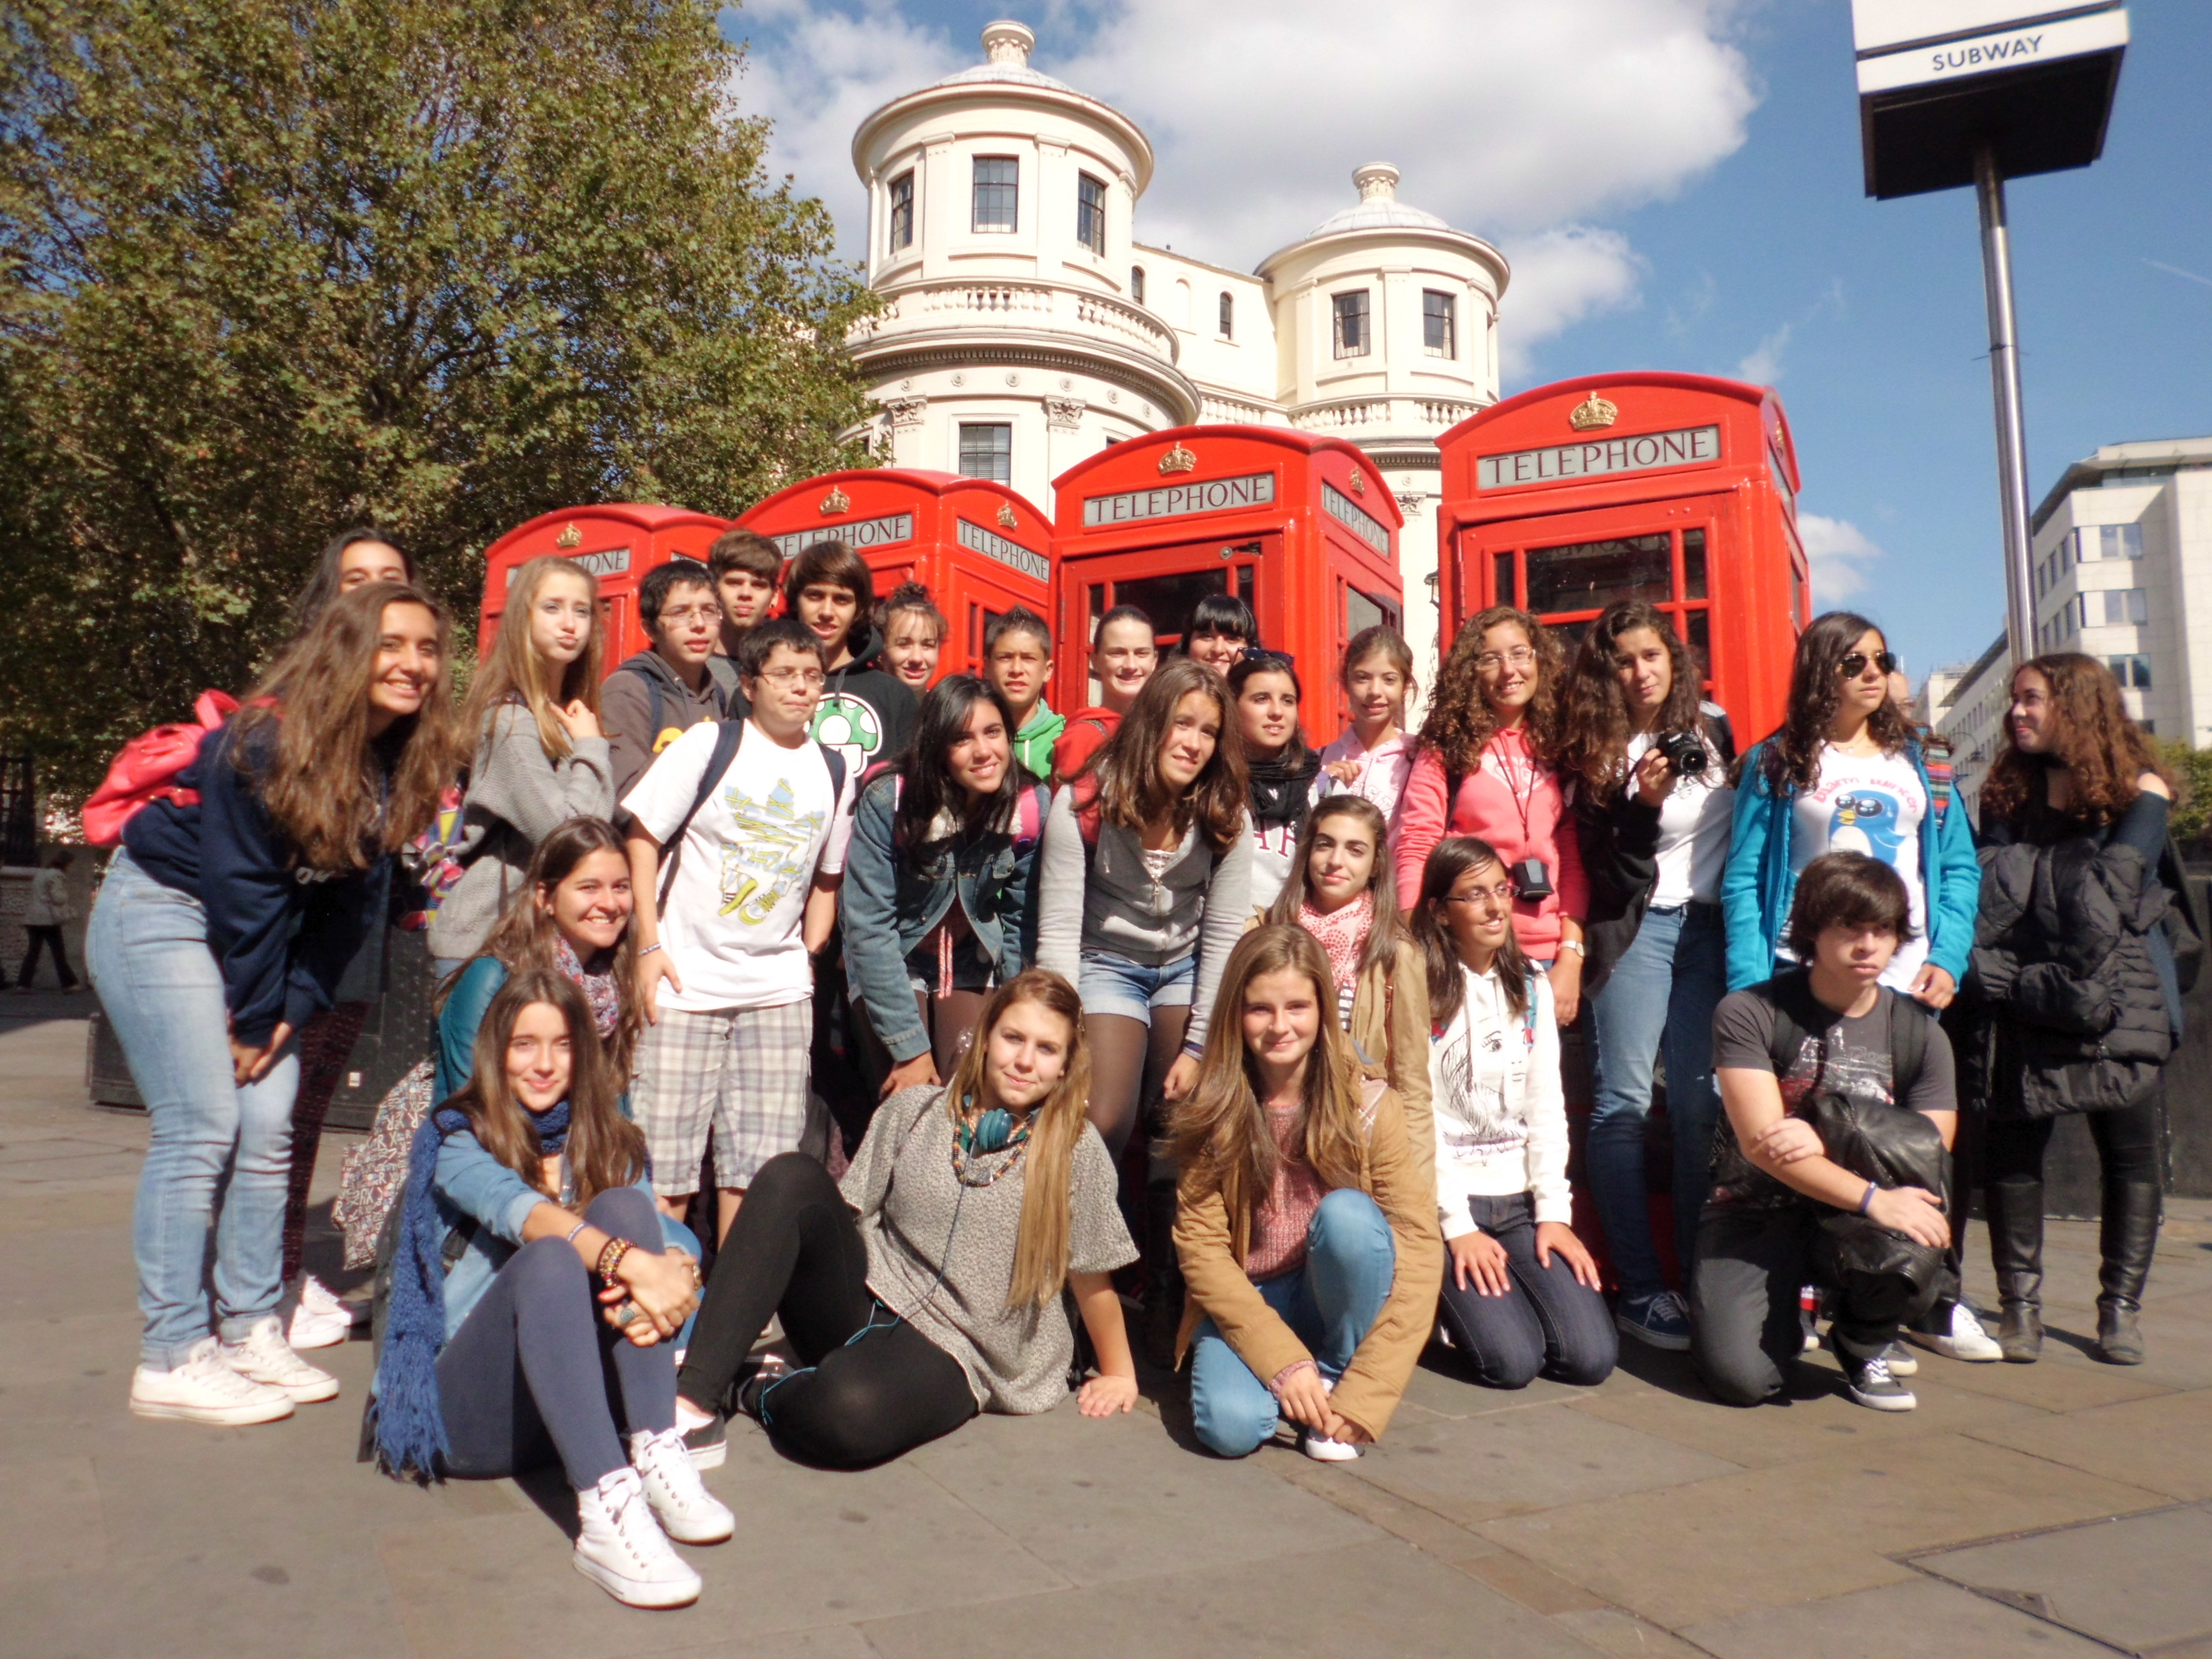 escuelas de ingles en london: